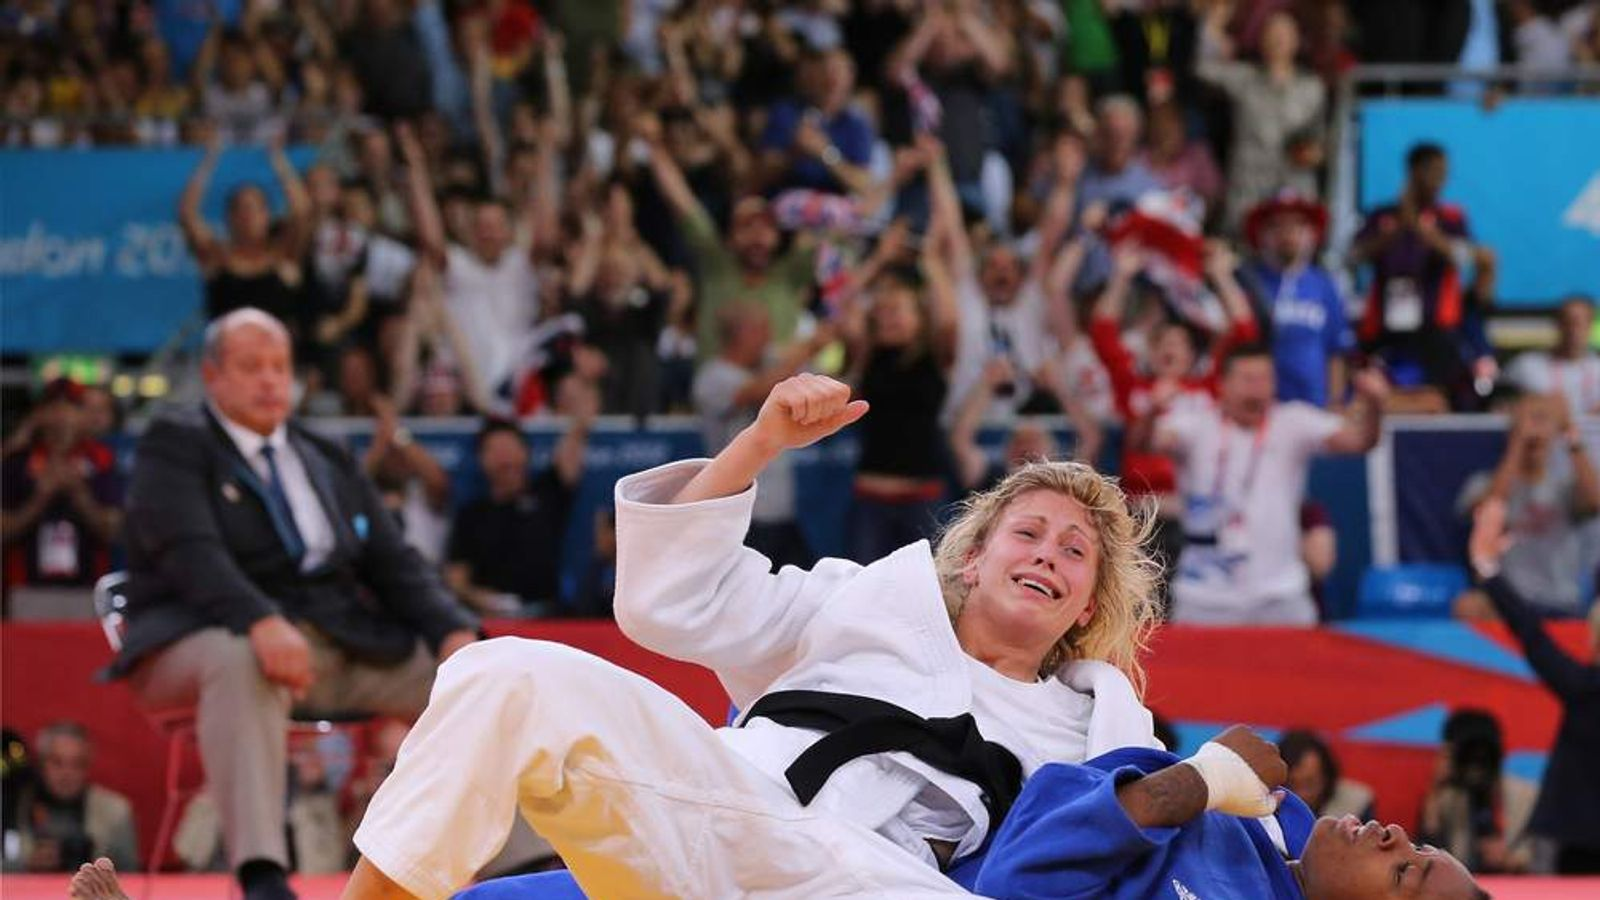 Gemma Gibbons of Great Britain (white) and Audrey Tcheumeo of France compete in the Women's -78 kg Judo on Day 6